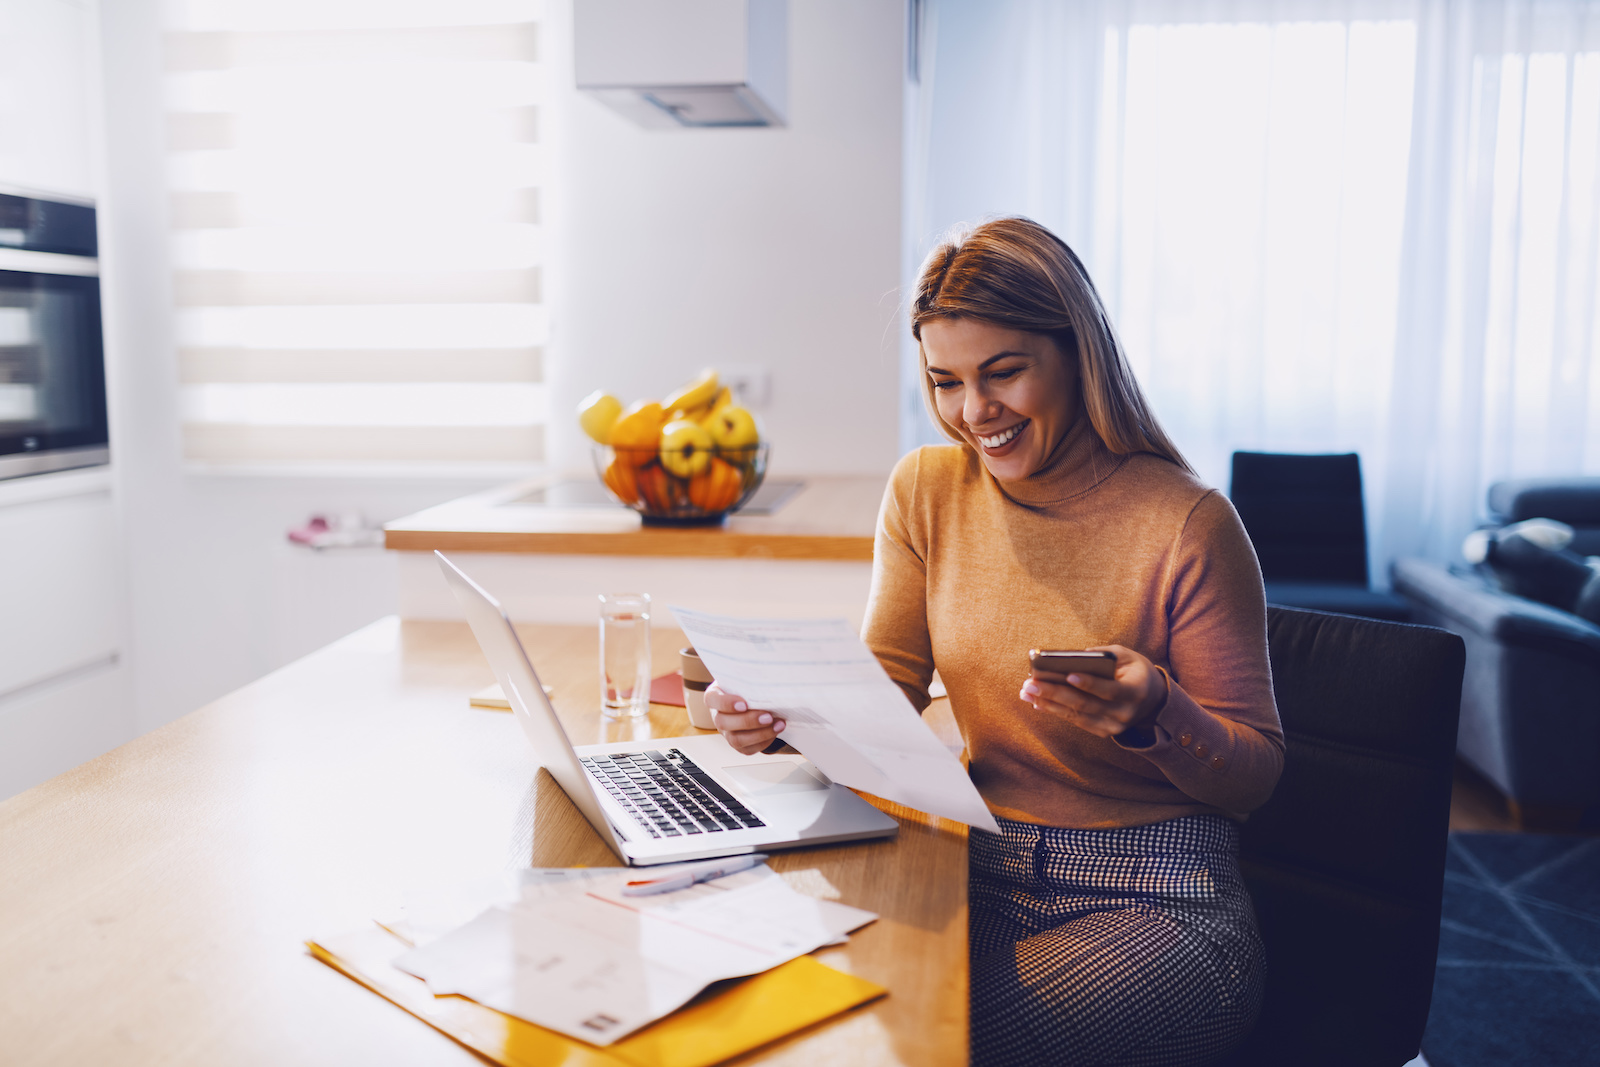 Soft credit check: A smiling woman looks at a financial document